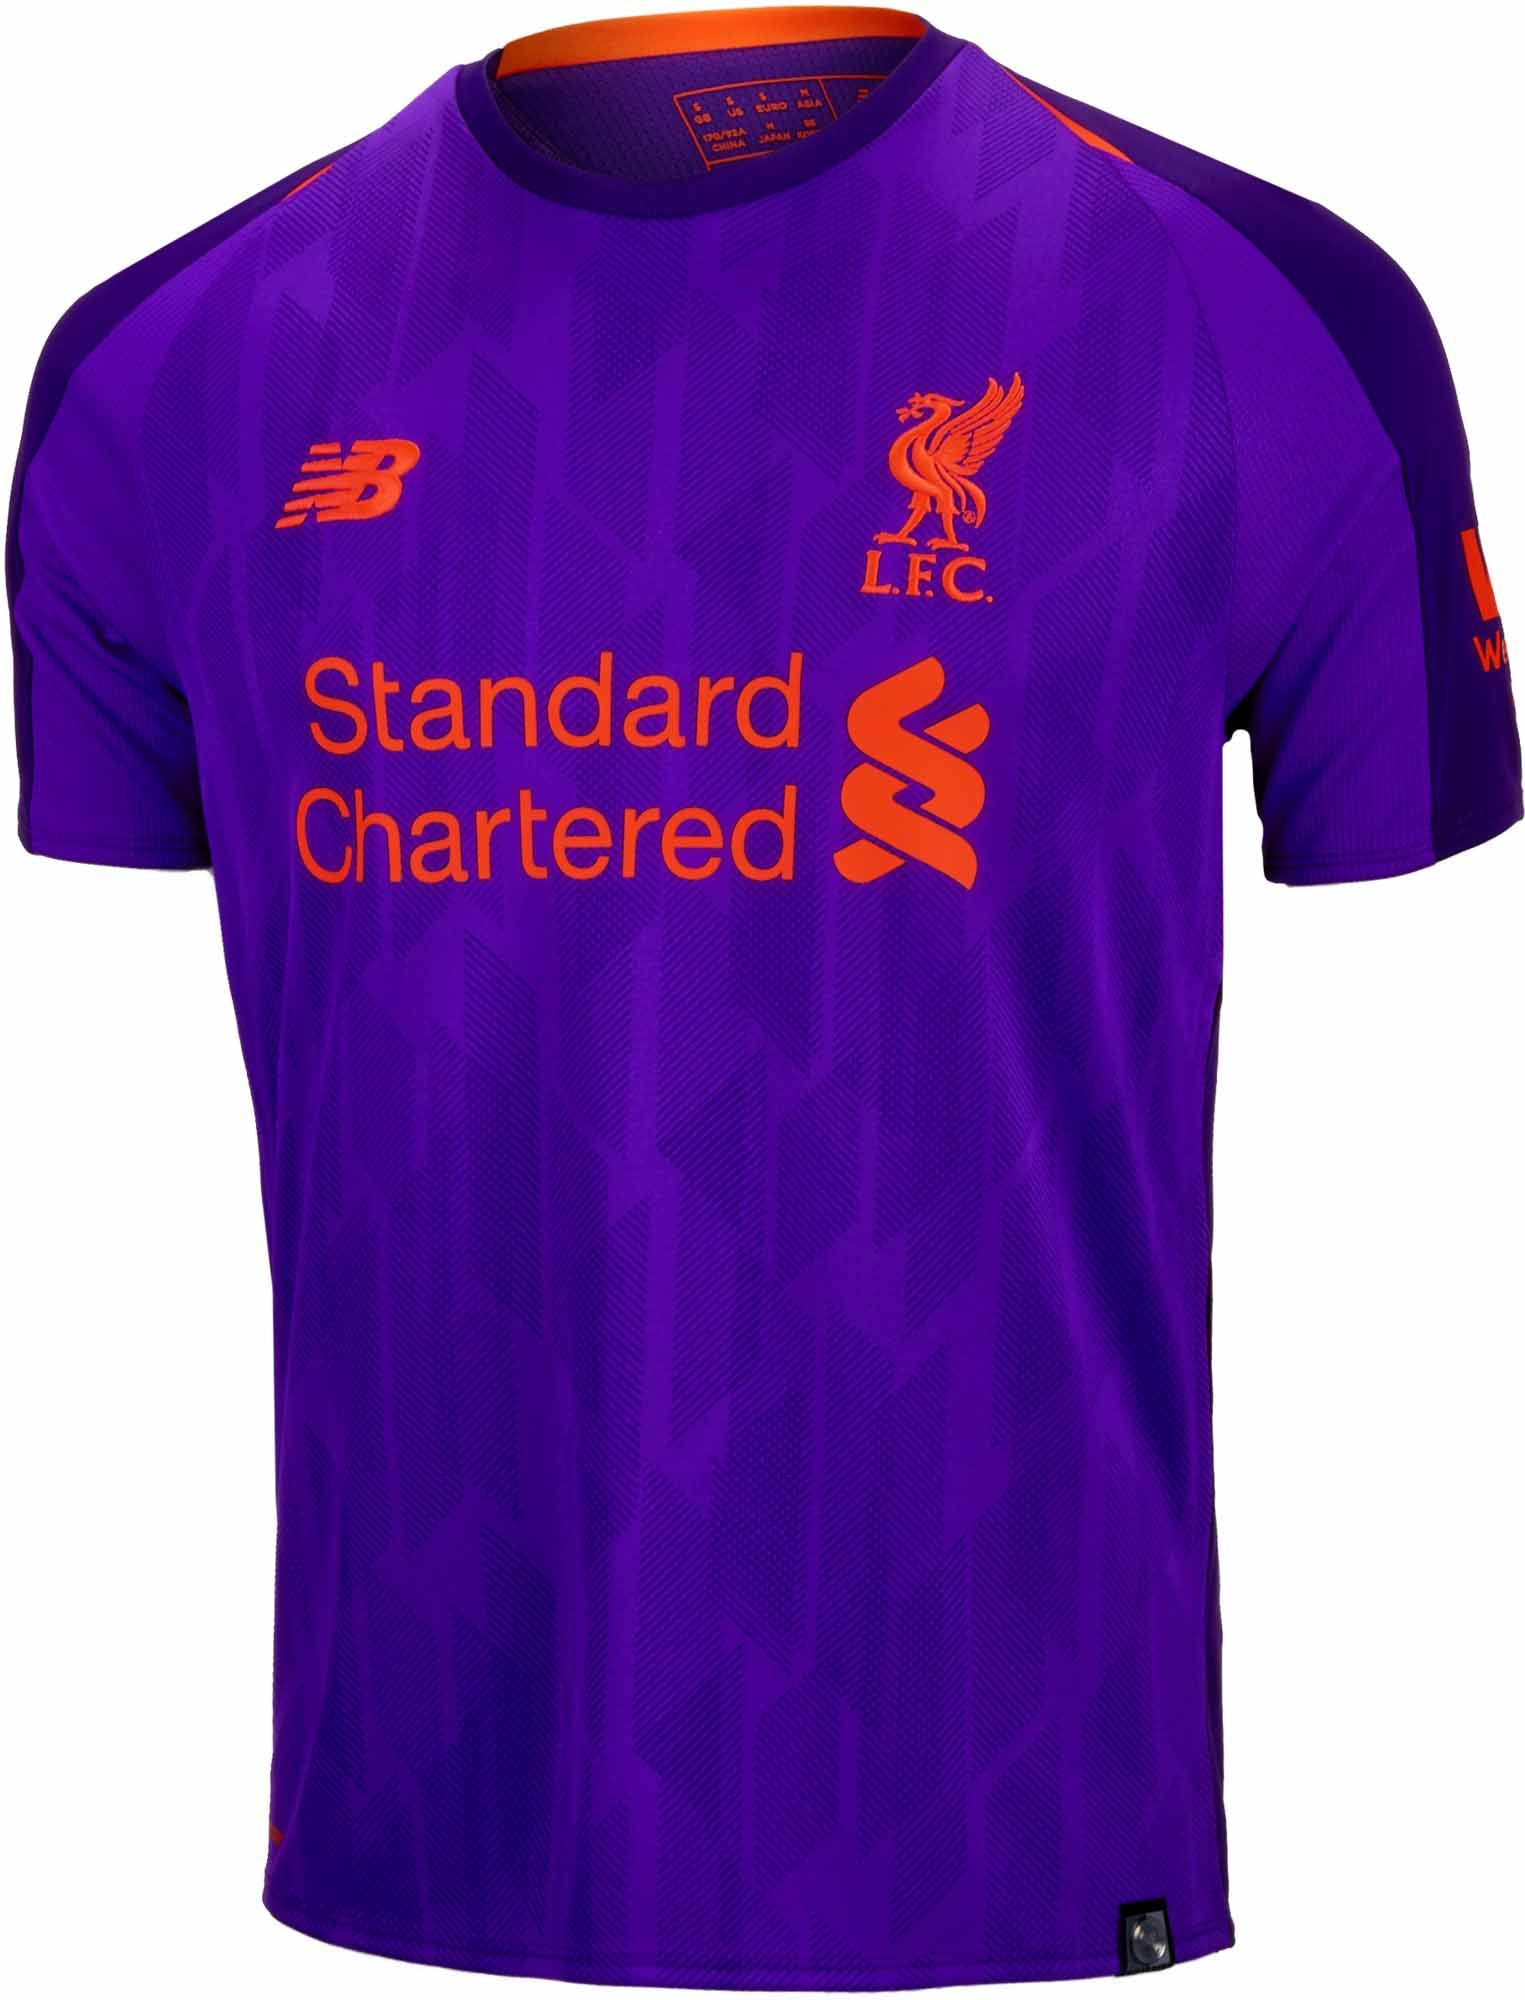 2018 19 Kids NB Liverpool Away Jersey. Hot at www.soccerpro.com 44deb9abc